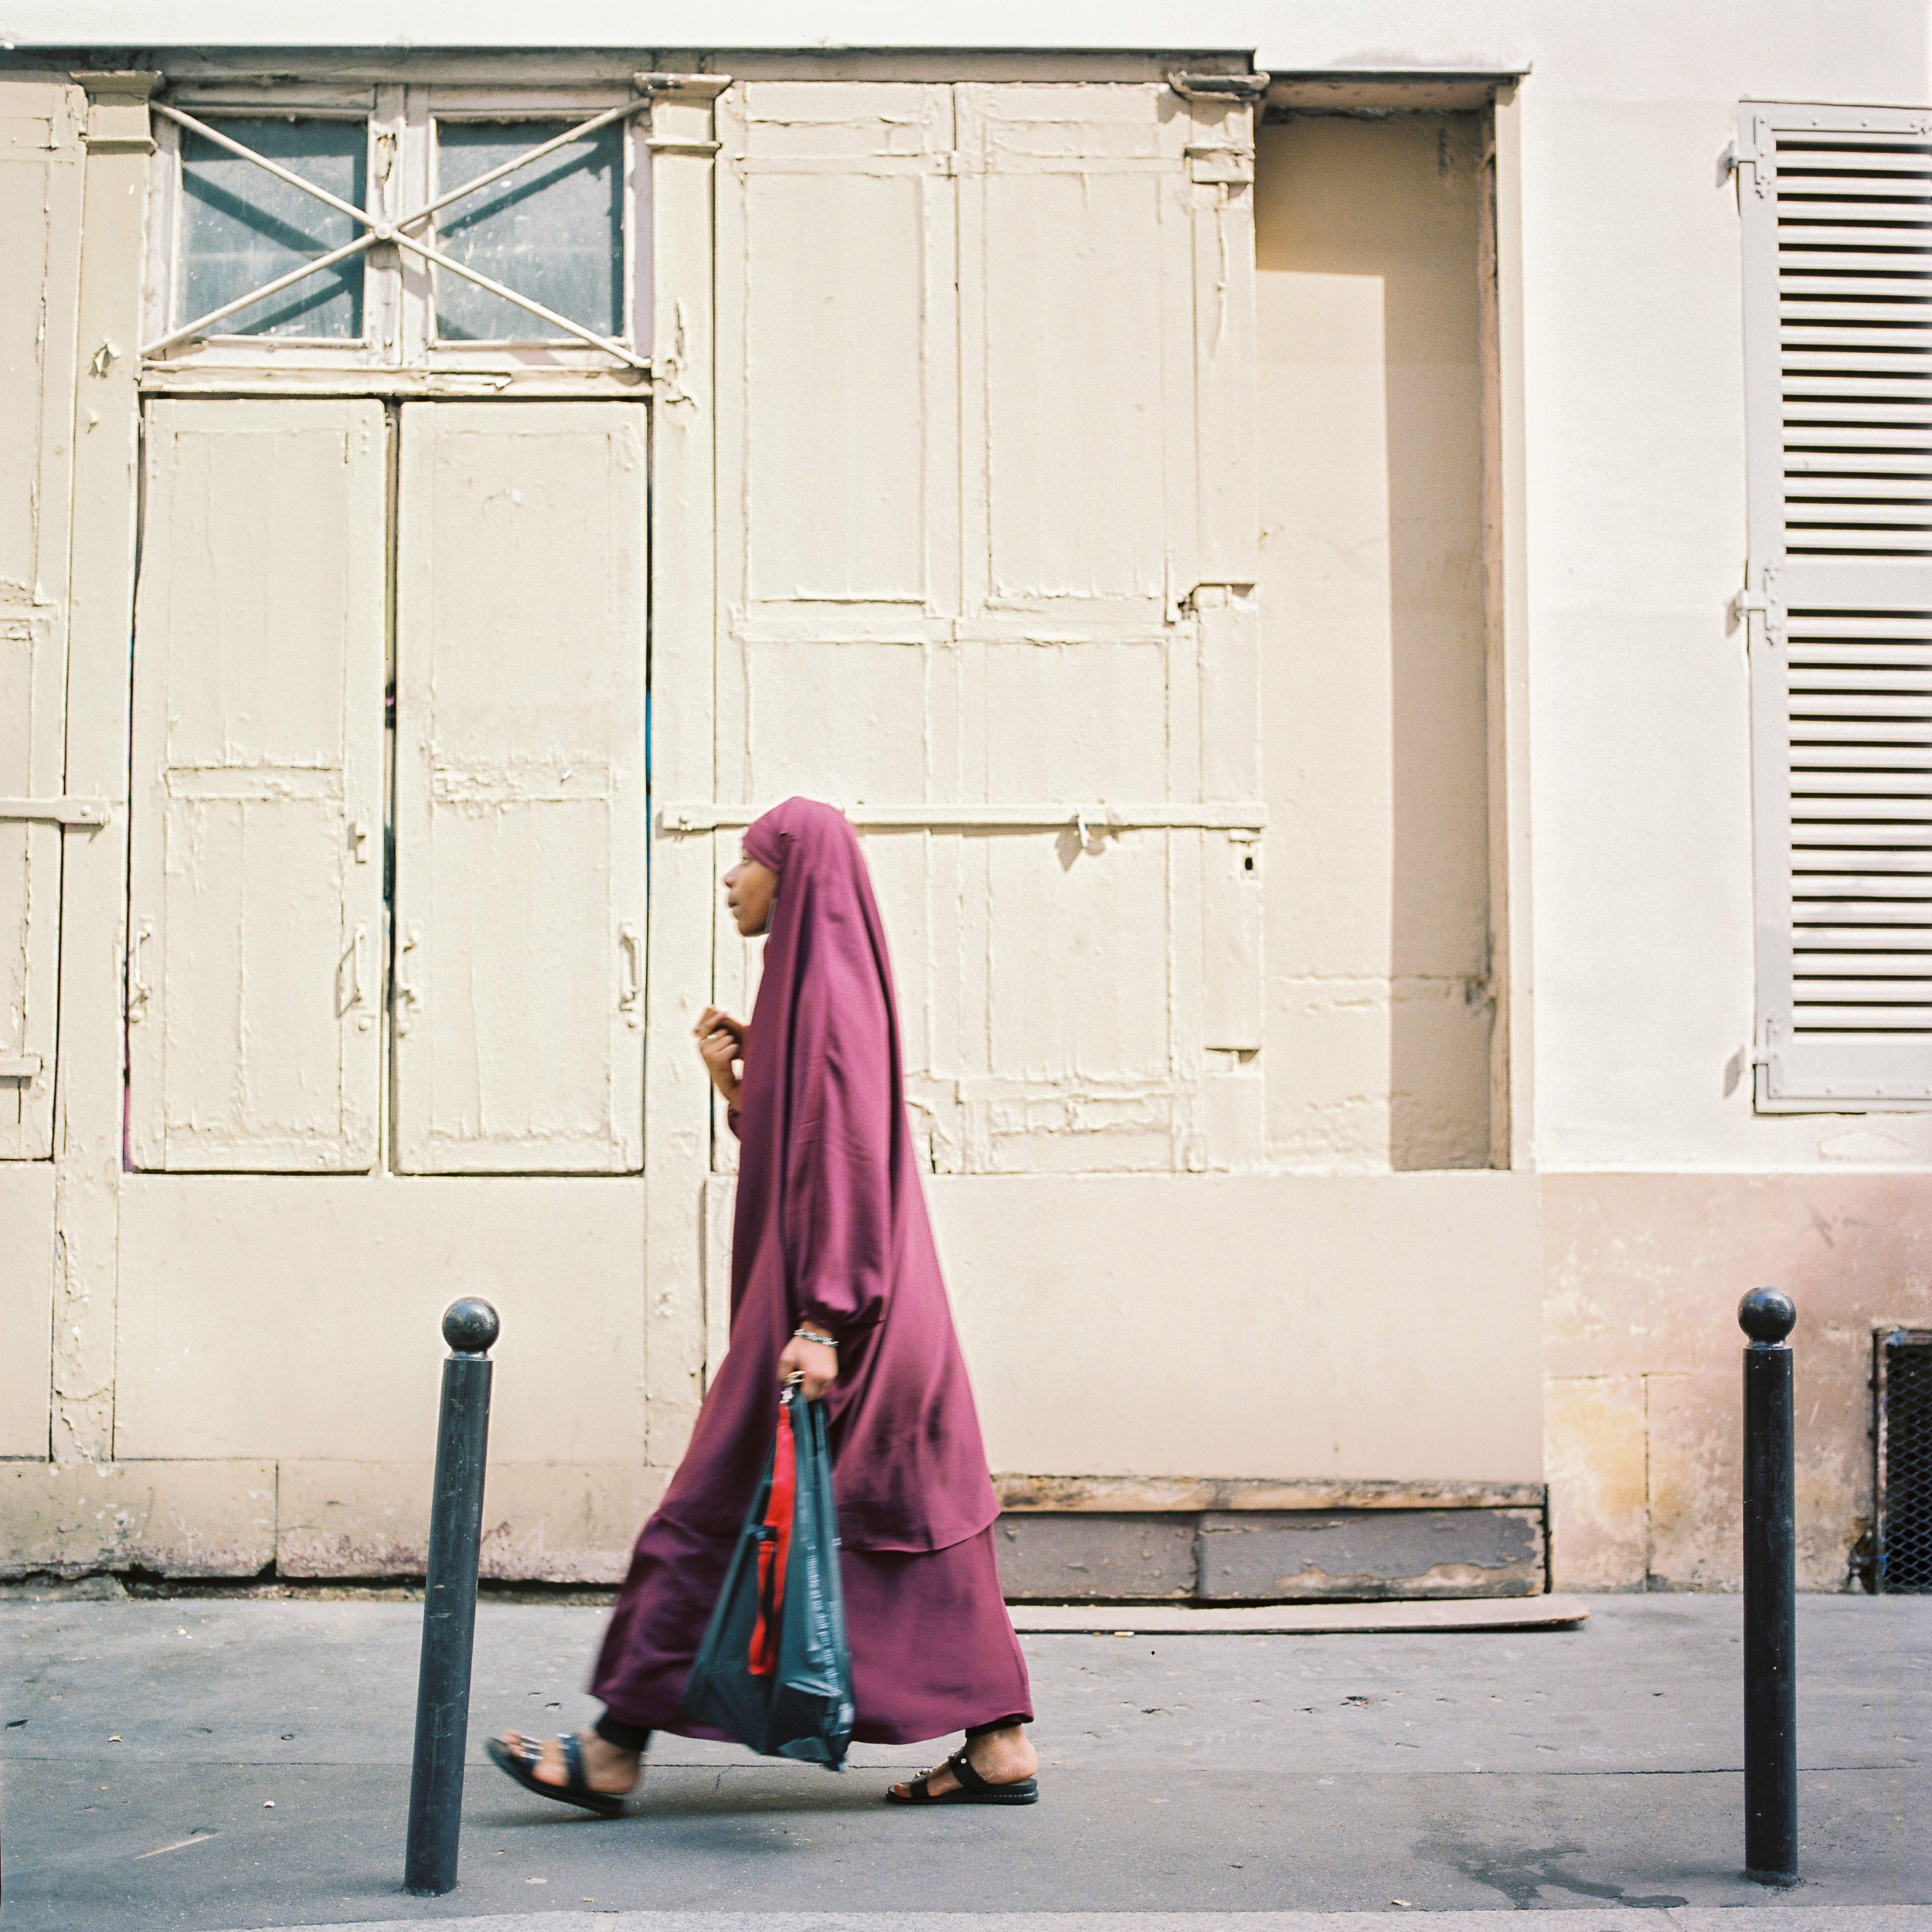 Paris_Portra-4.jpg